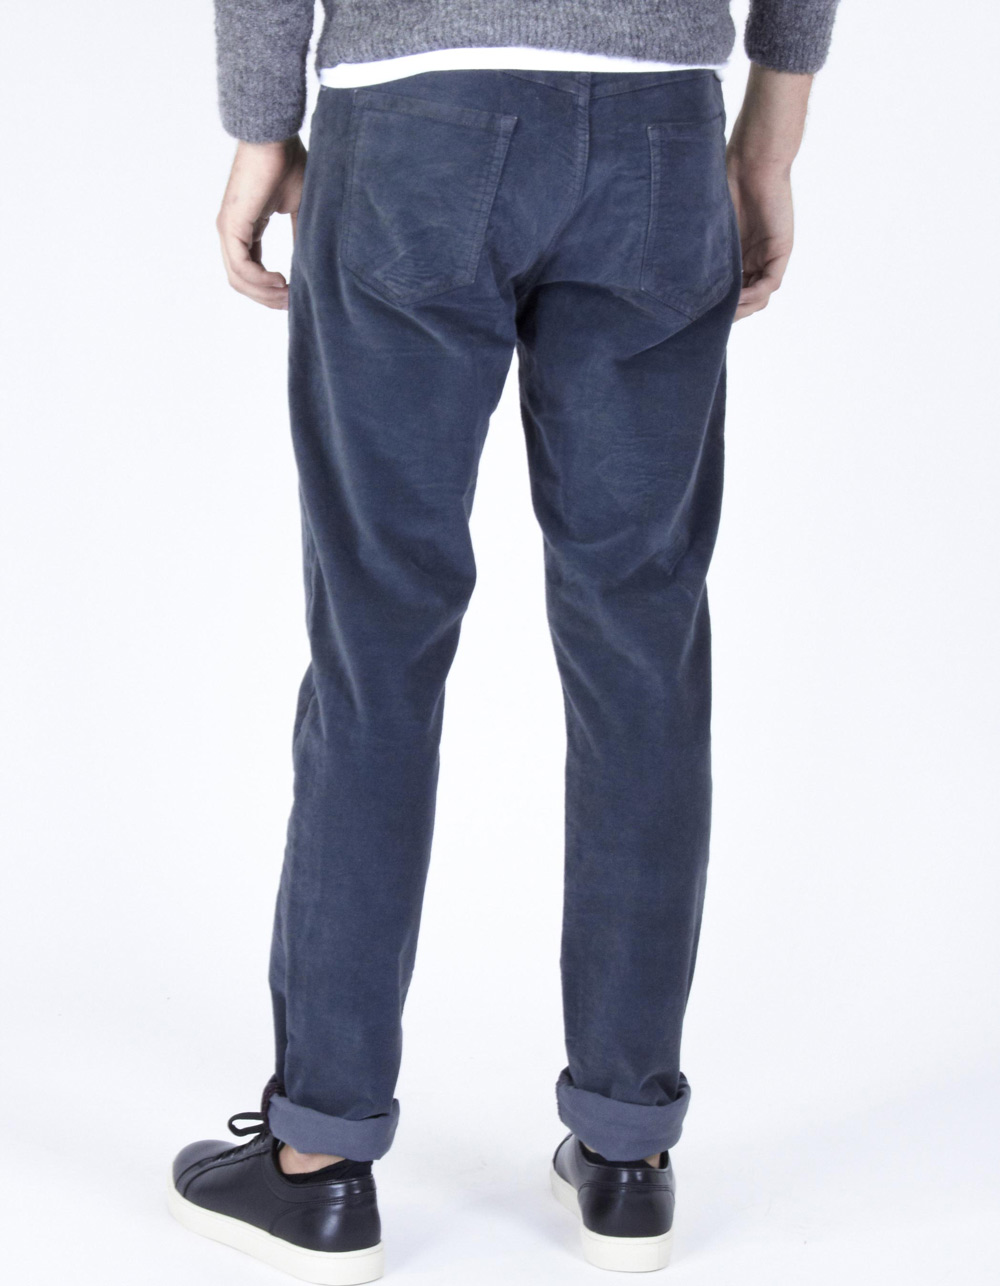 Charcoal grey micro-structure jeans - Backside